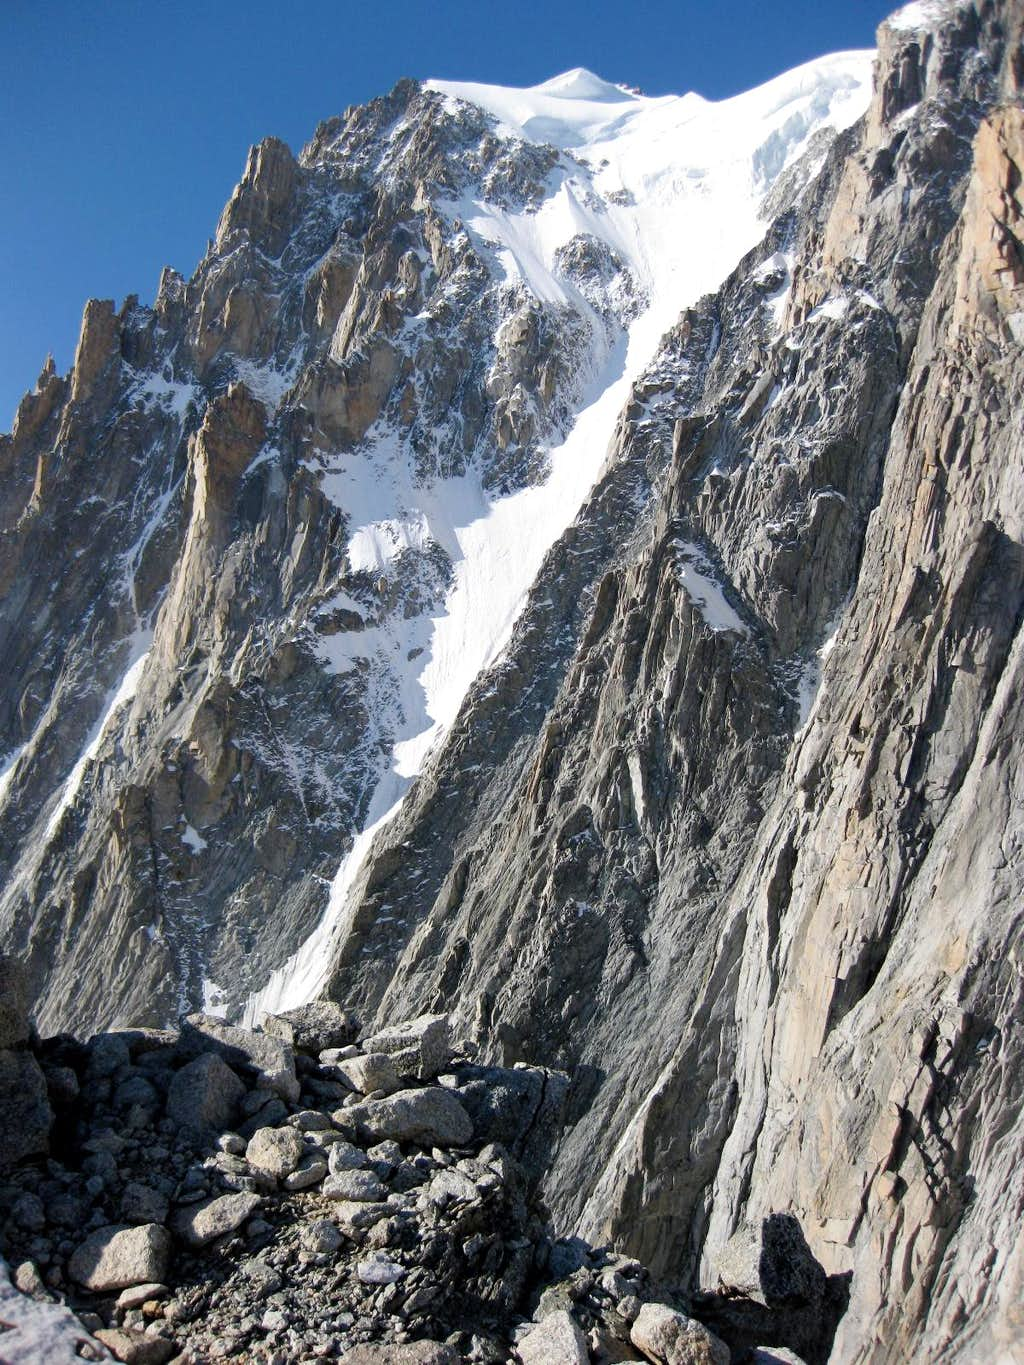 Gervasutti Couloir on Mont Blanc du Tacul